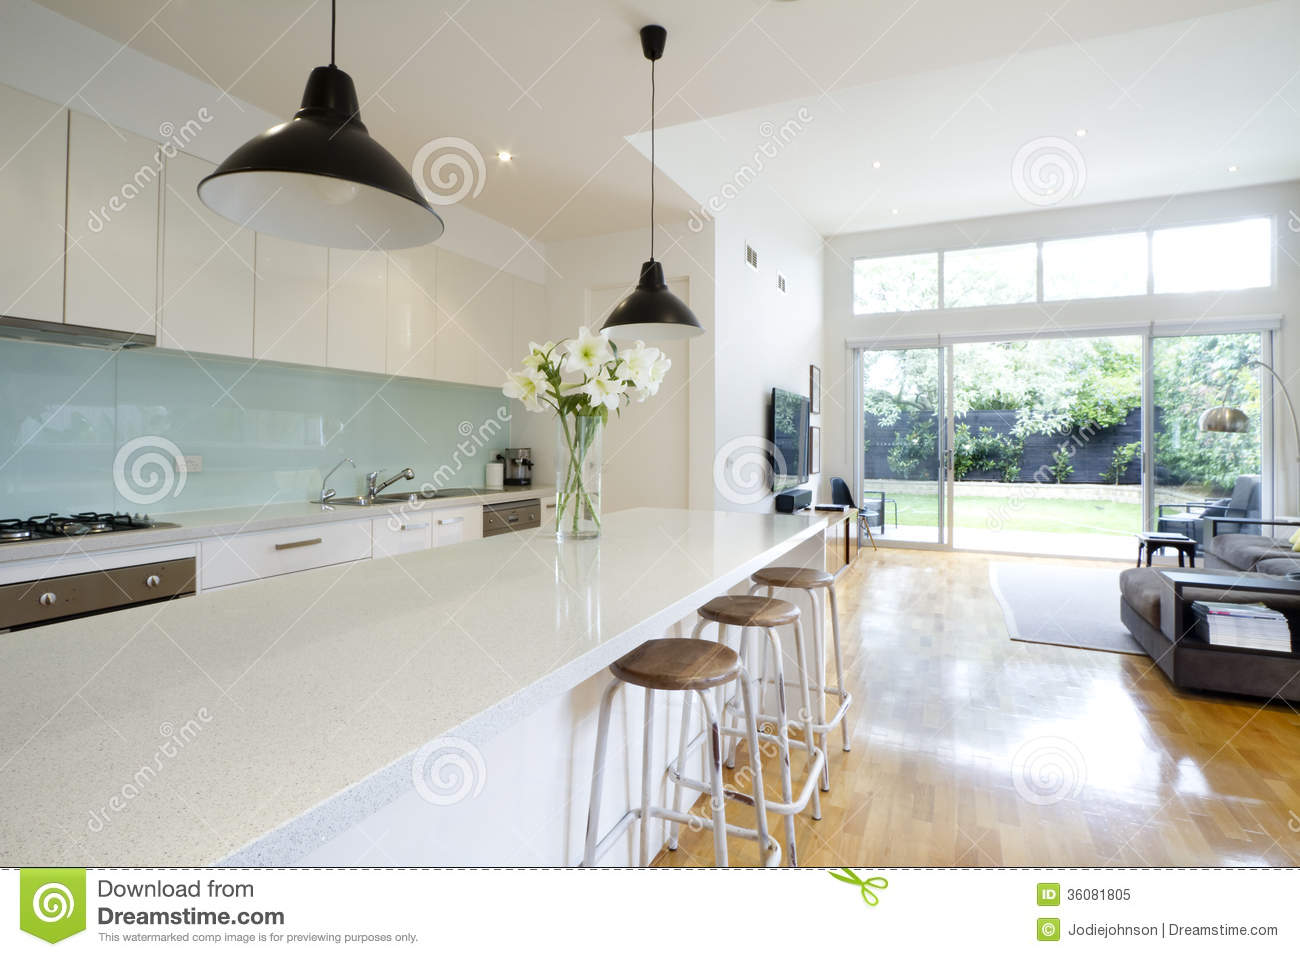 Contemporary Kitchen Living Room Stock Image - Image of contemporary ...